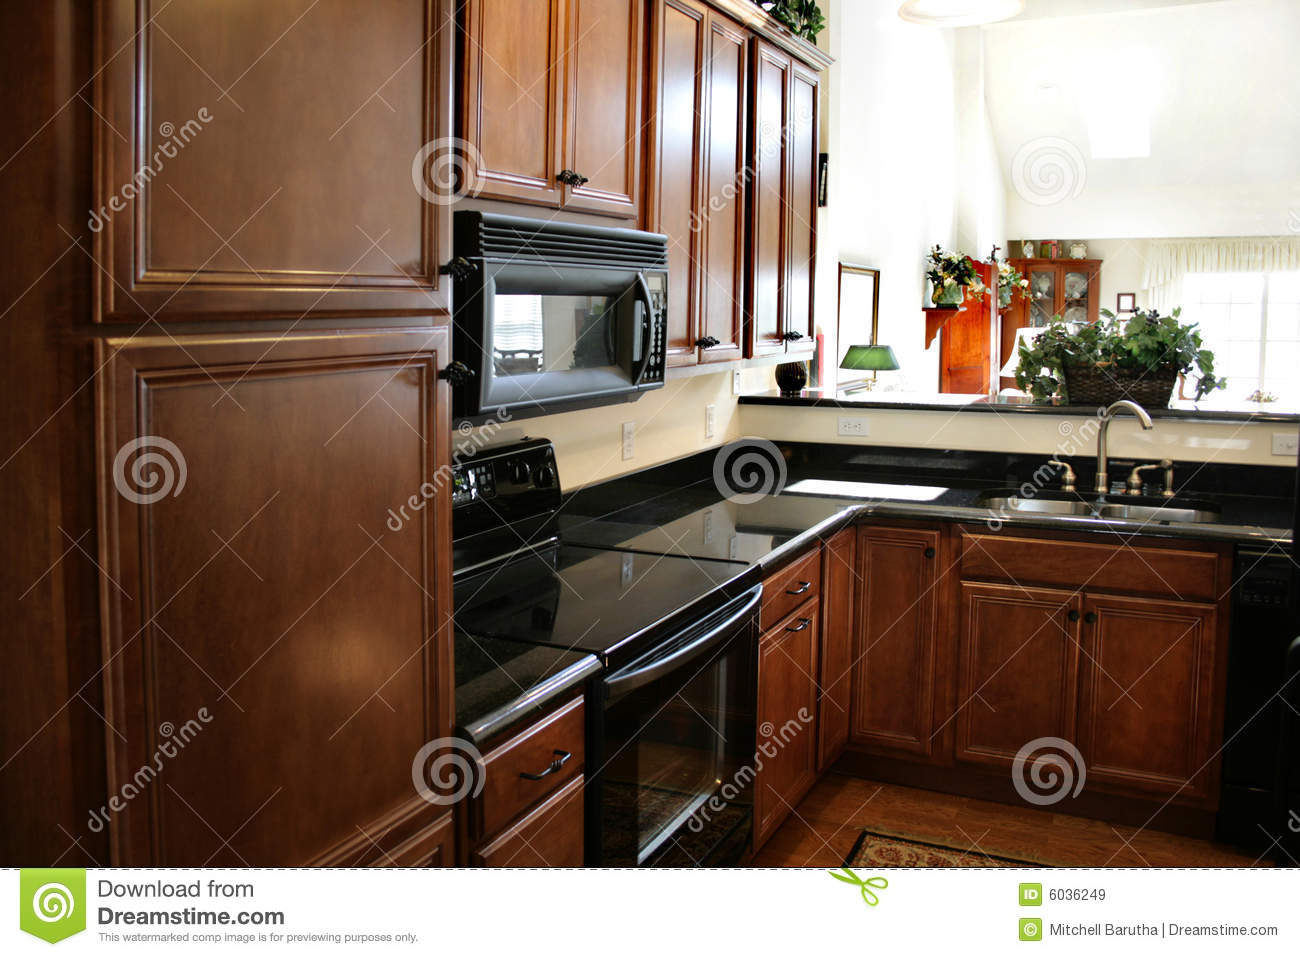 Kitchen wood cabinets black and stainless stove royalty for Black kitchen cabinets online